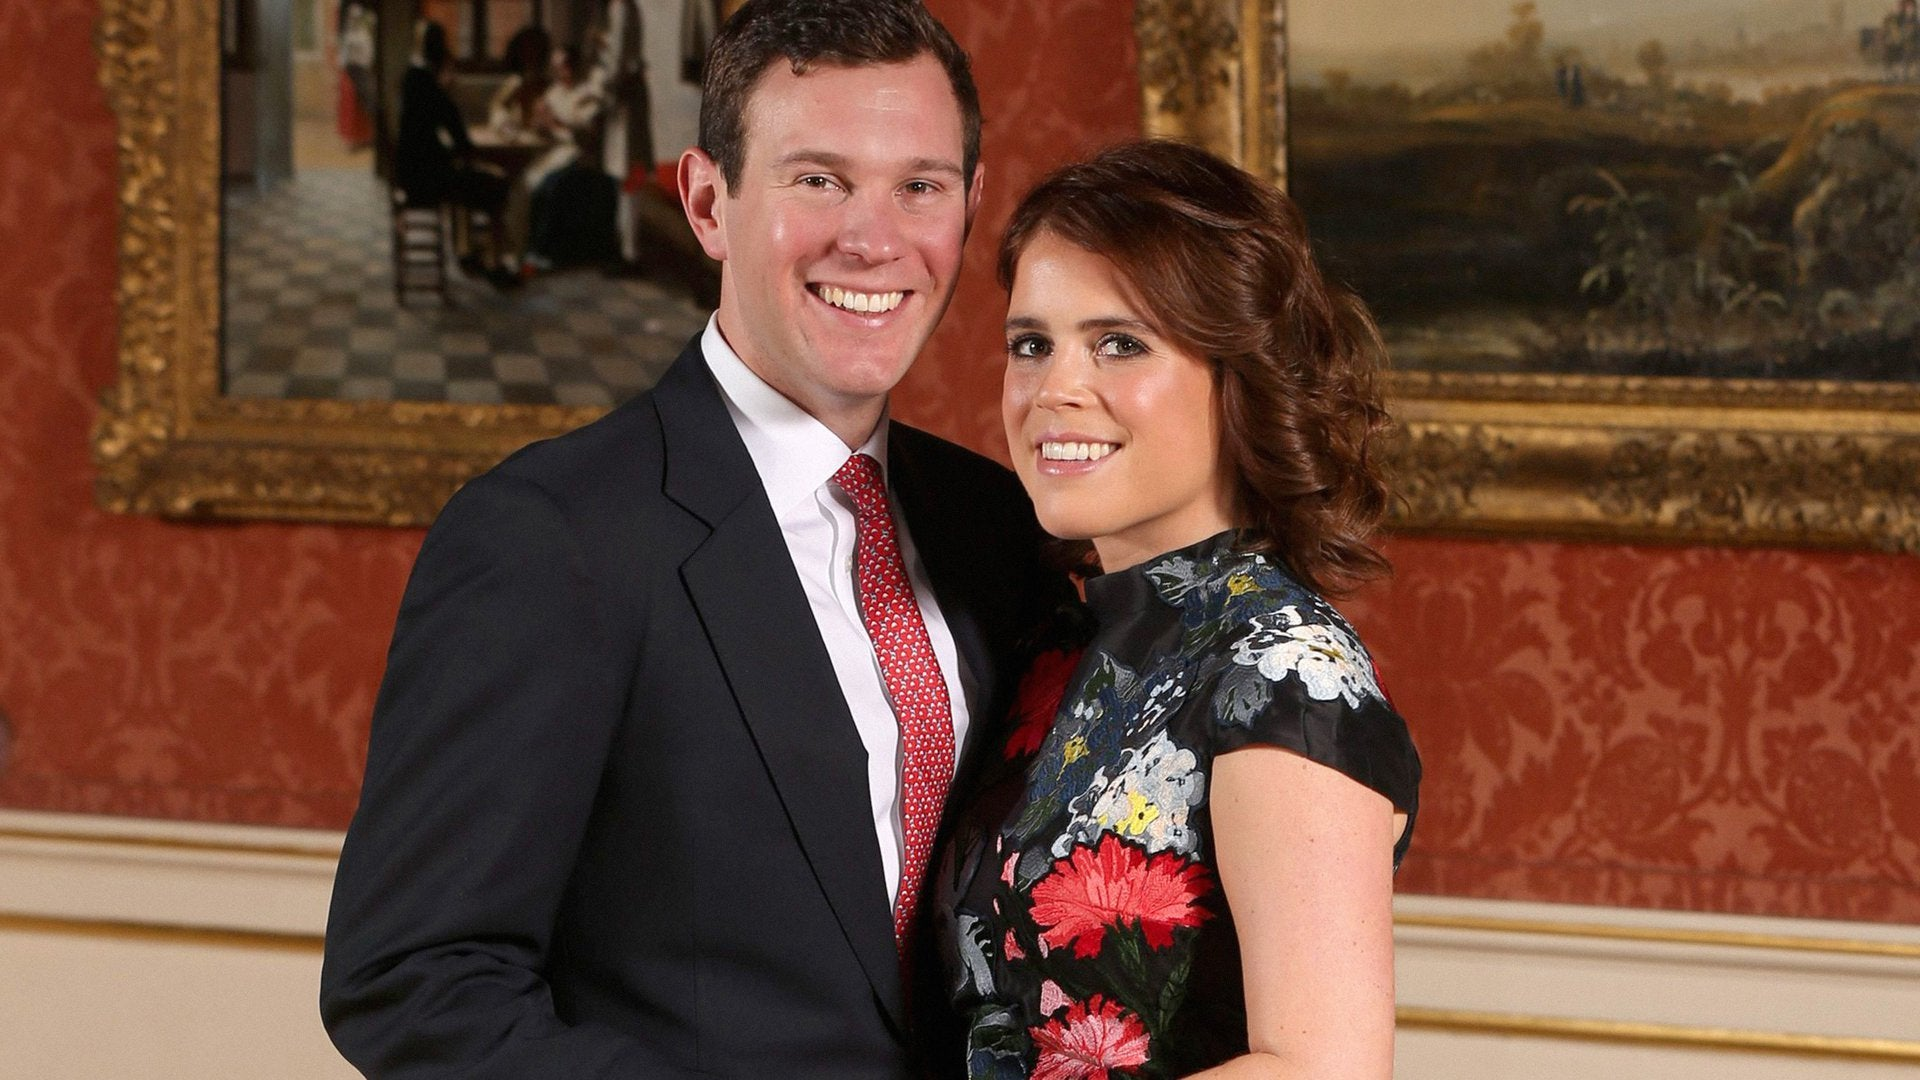 Royal Wedding LIVE: Princess Eugenie